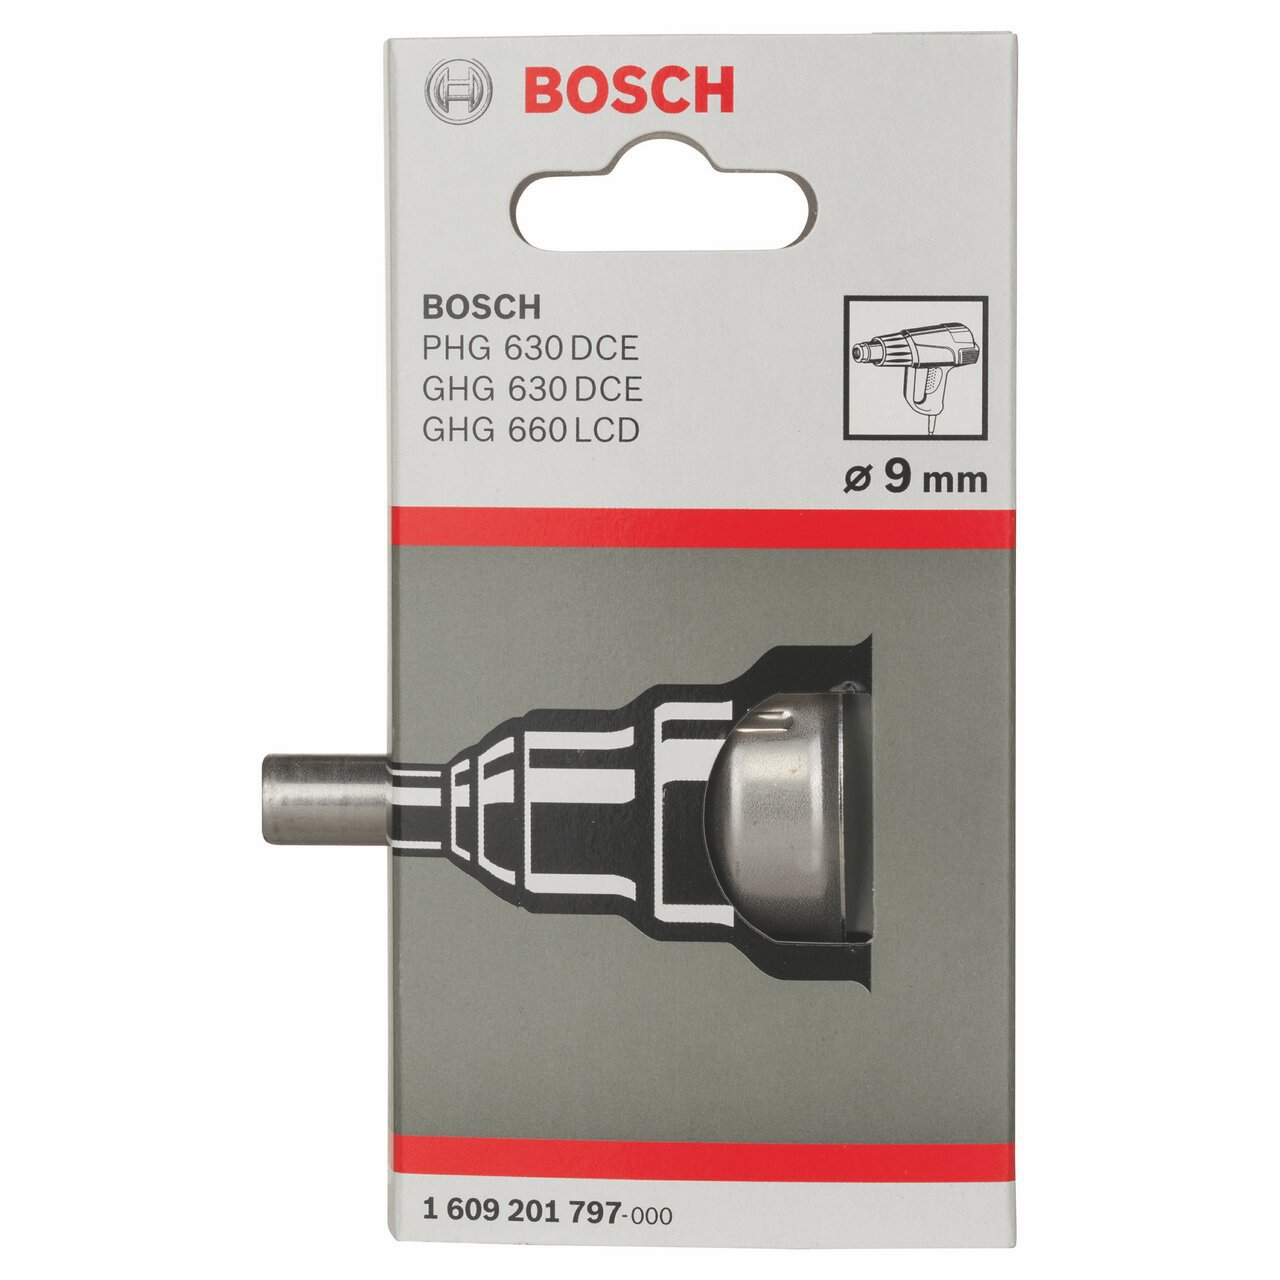 Bosch 1609201797 Reduction Nozzle for Bosch PHG 630 DCE